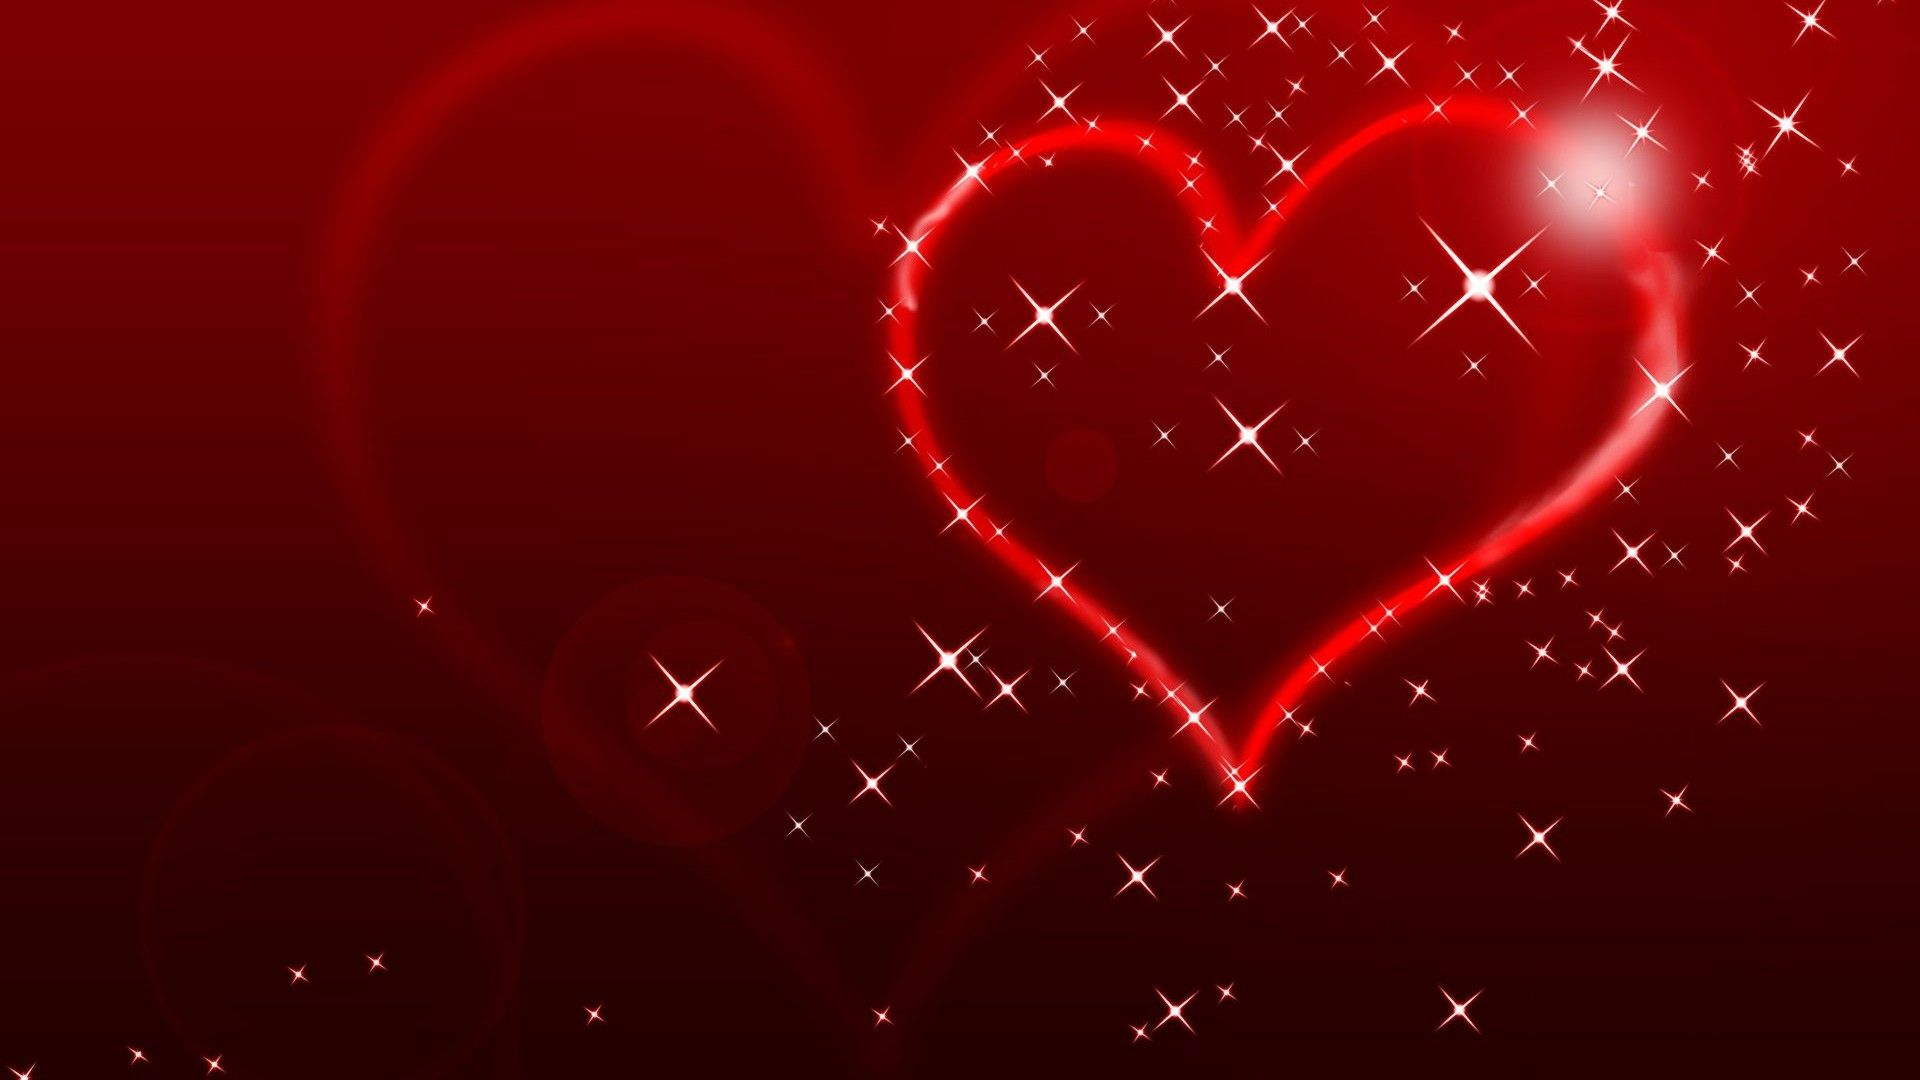 Valentine Wallpaper Best Hd Wallpapers Wallpaperscute In 2018